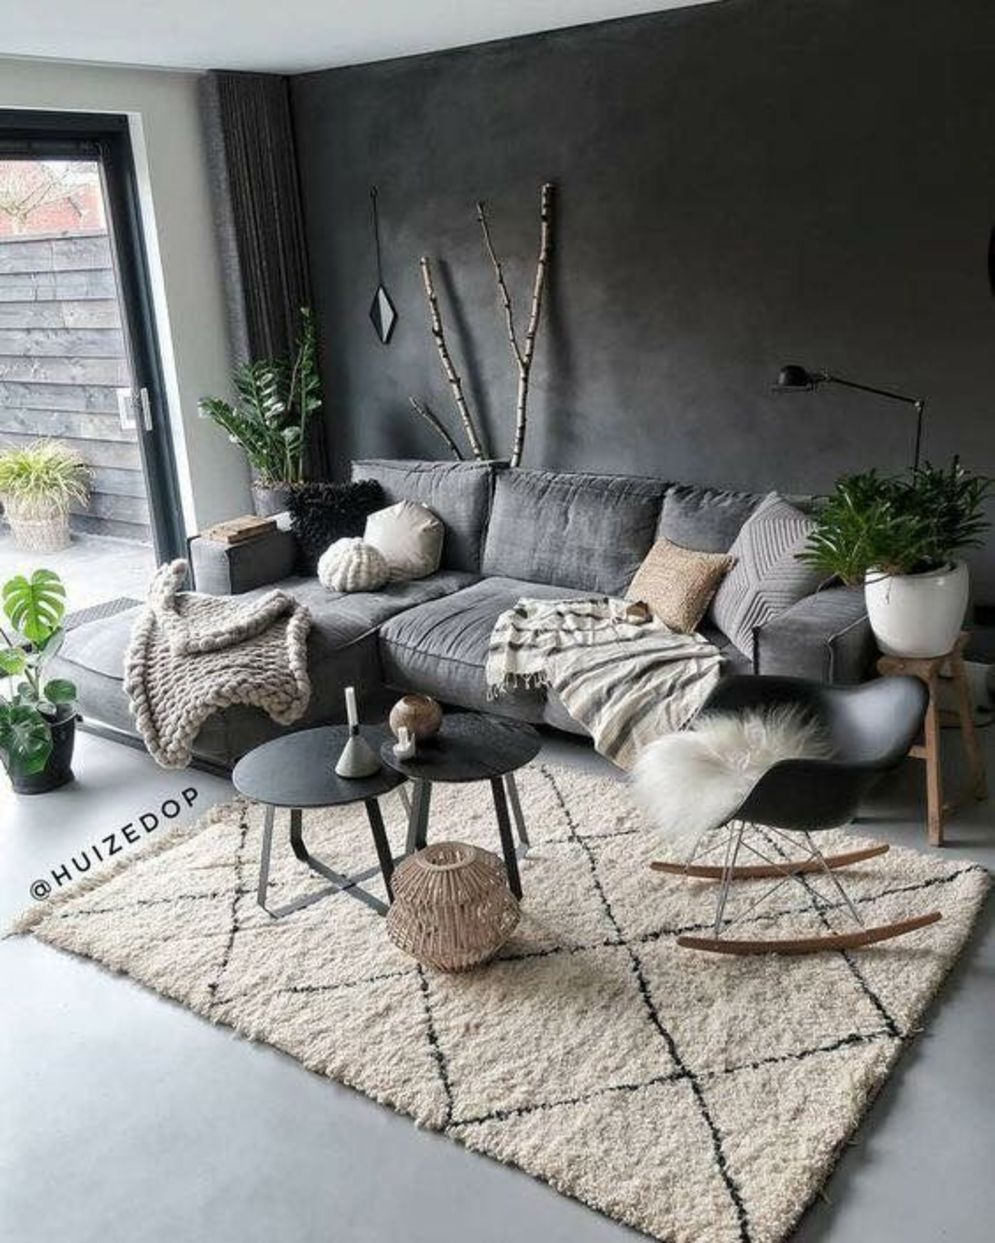 Expressive interior display in multilayering textures and colors showing artsy interior schemes with retro and vintage accents Image 7